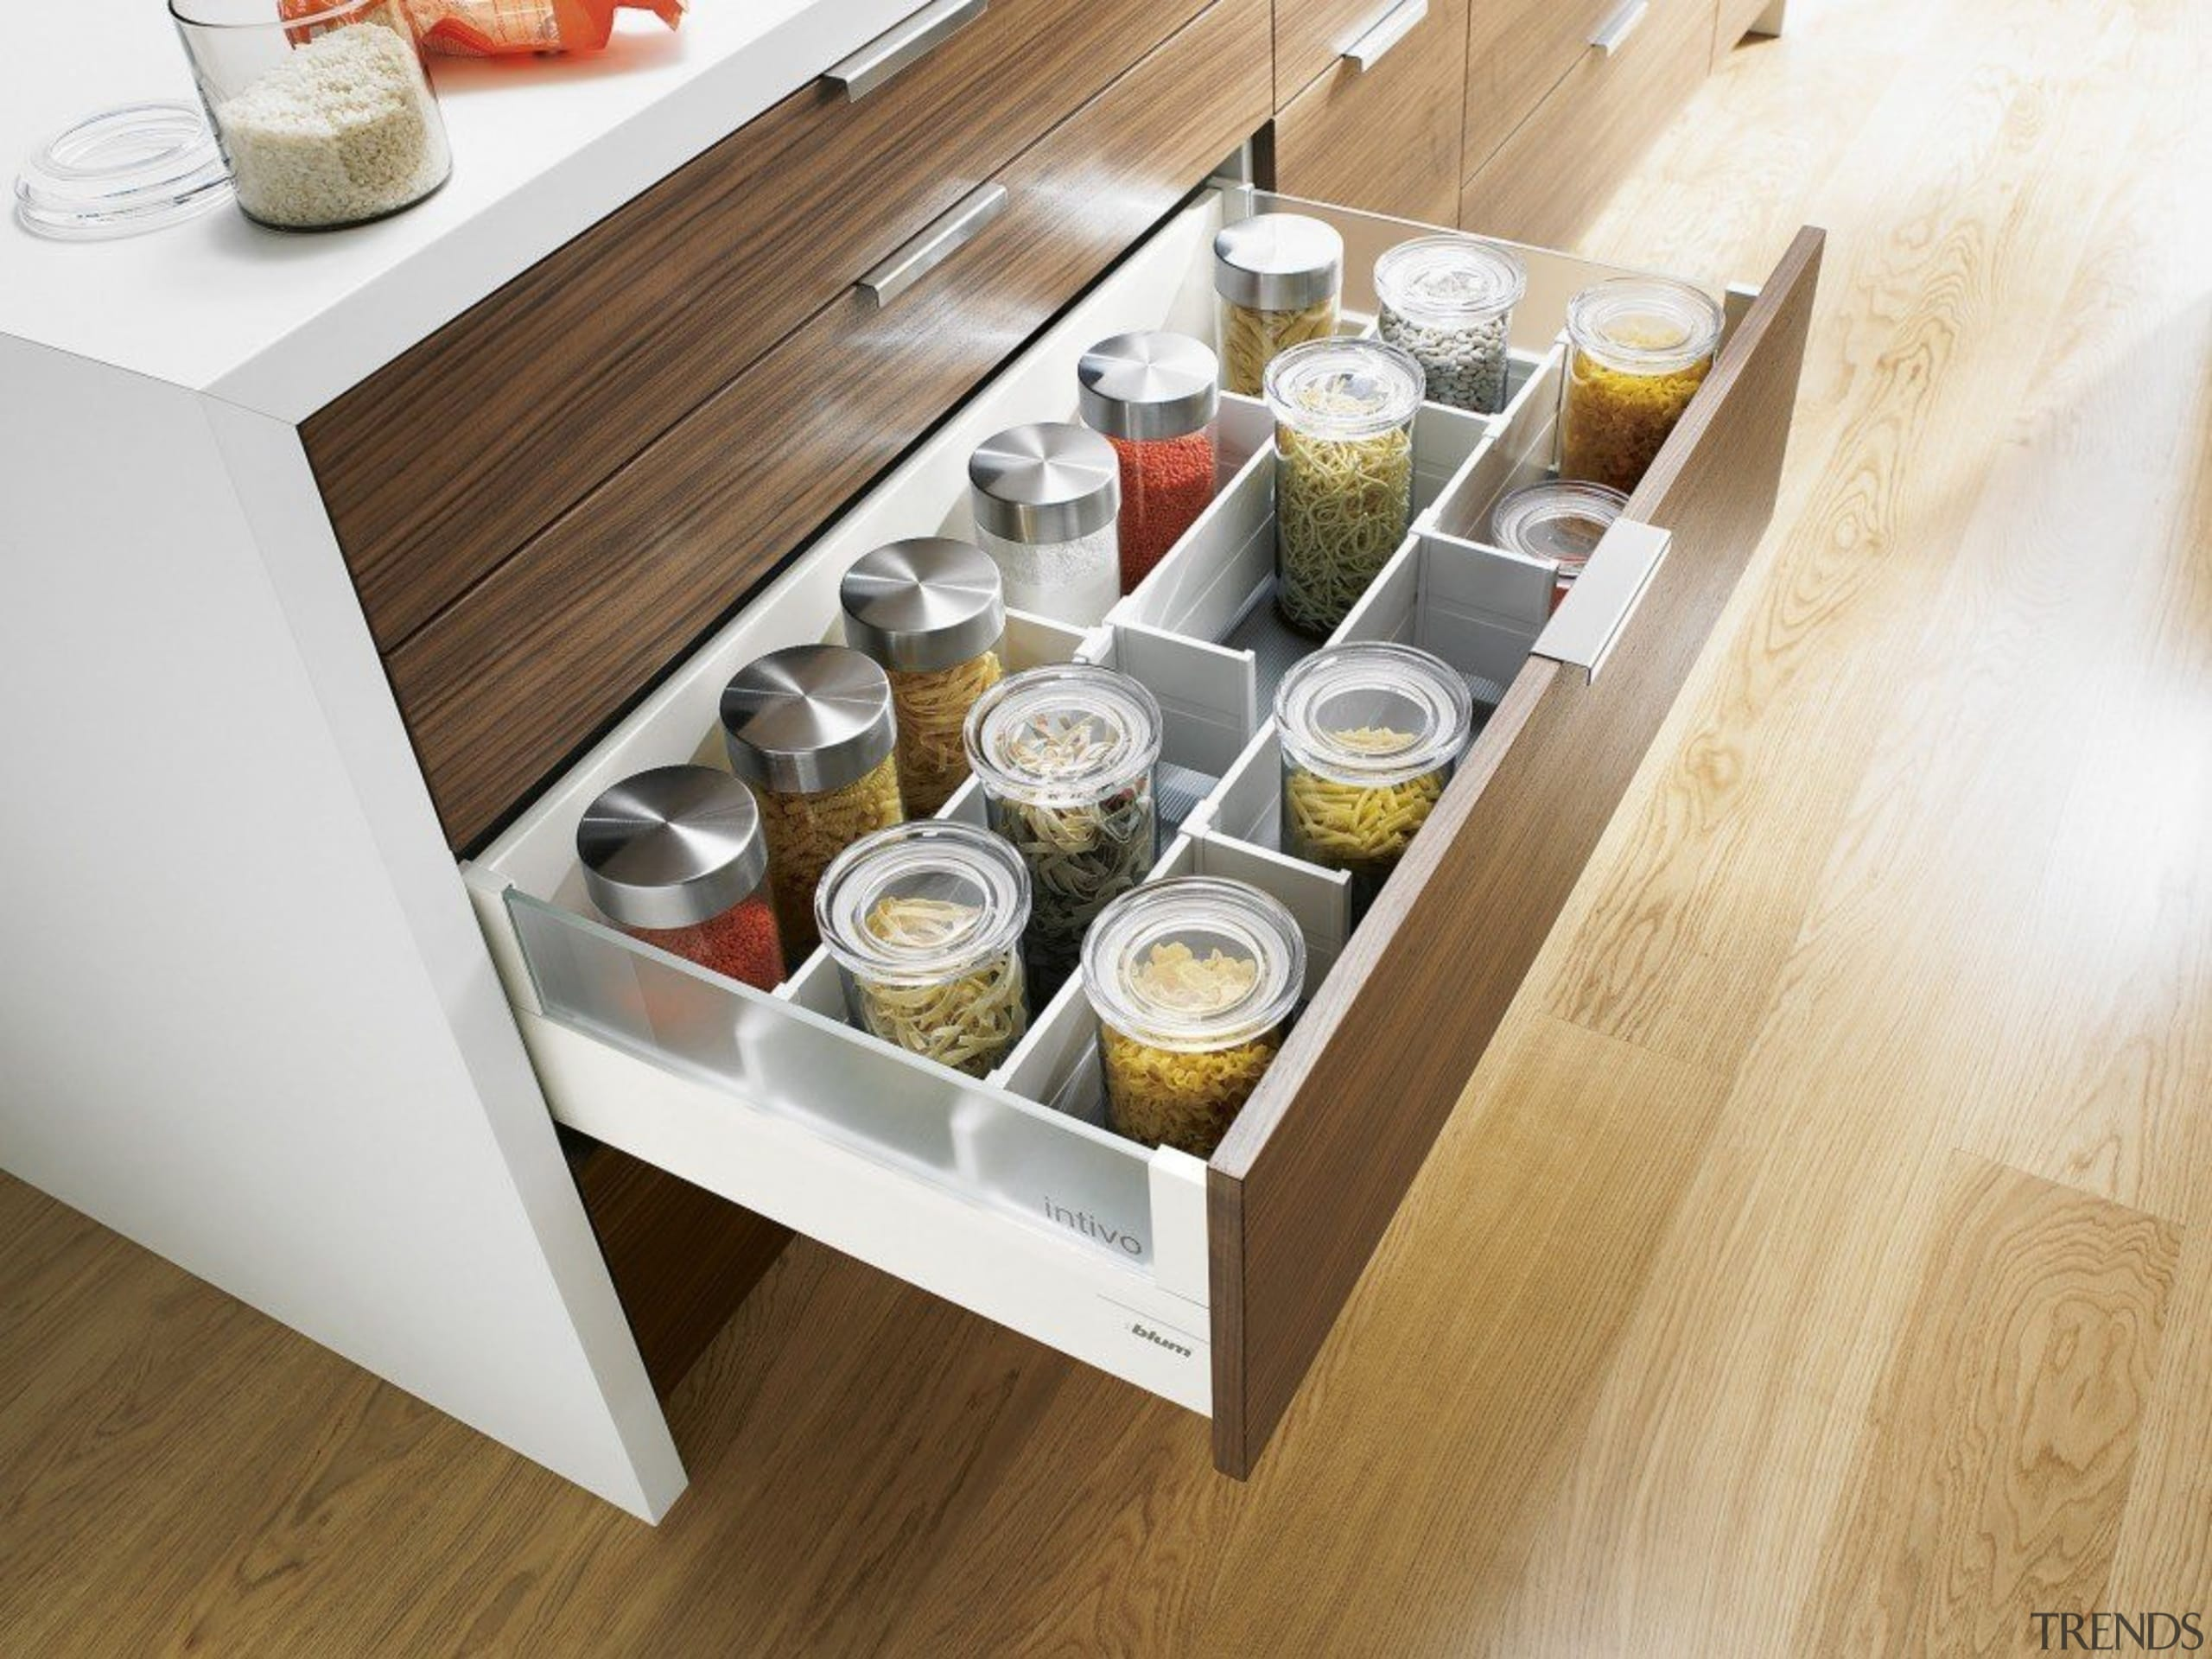 ORGA-LINE inner dividing system – so many practical drawer, furniture, product design, table, white, brown